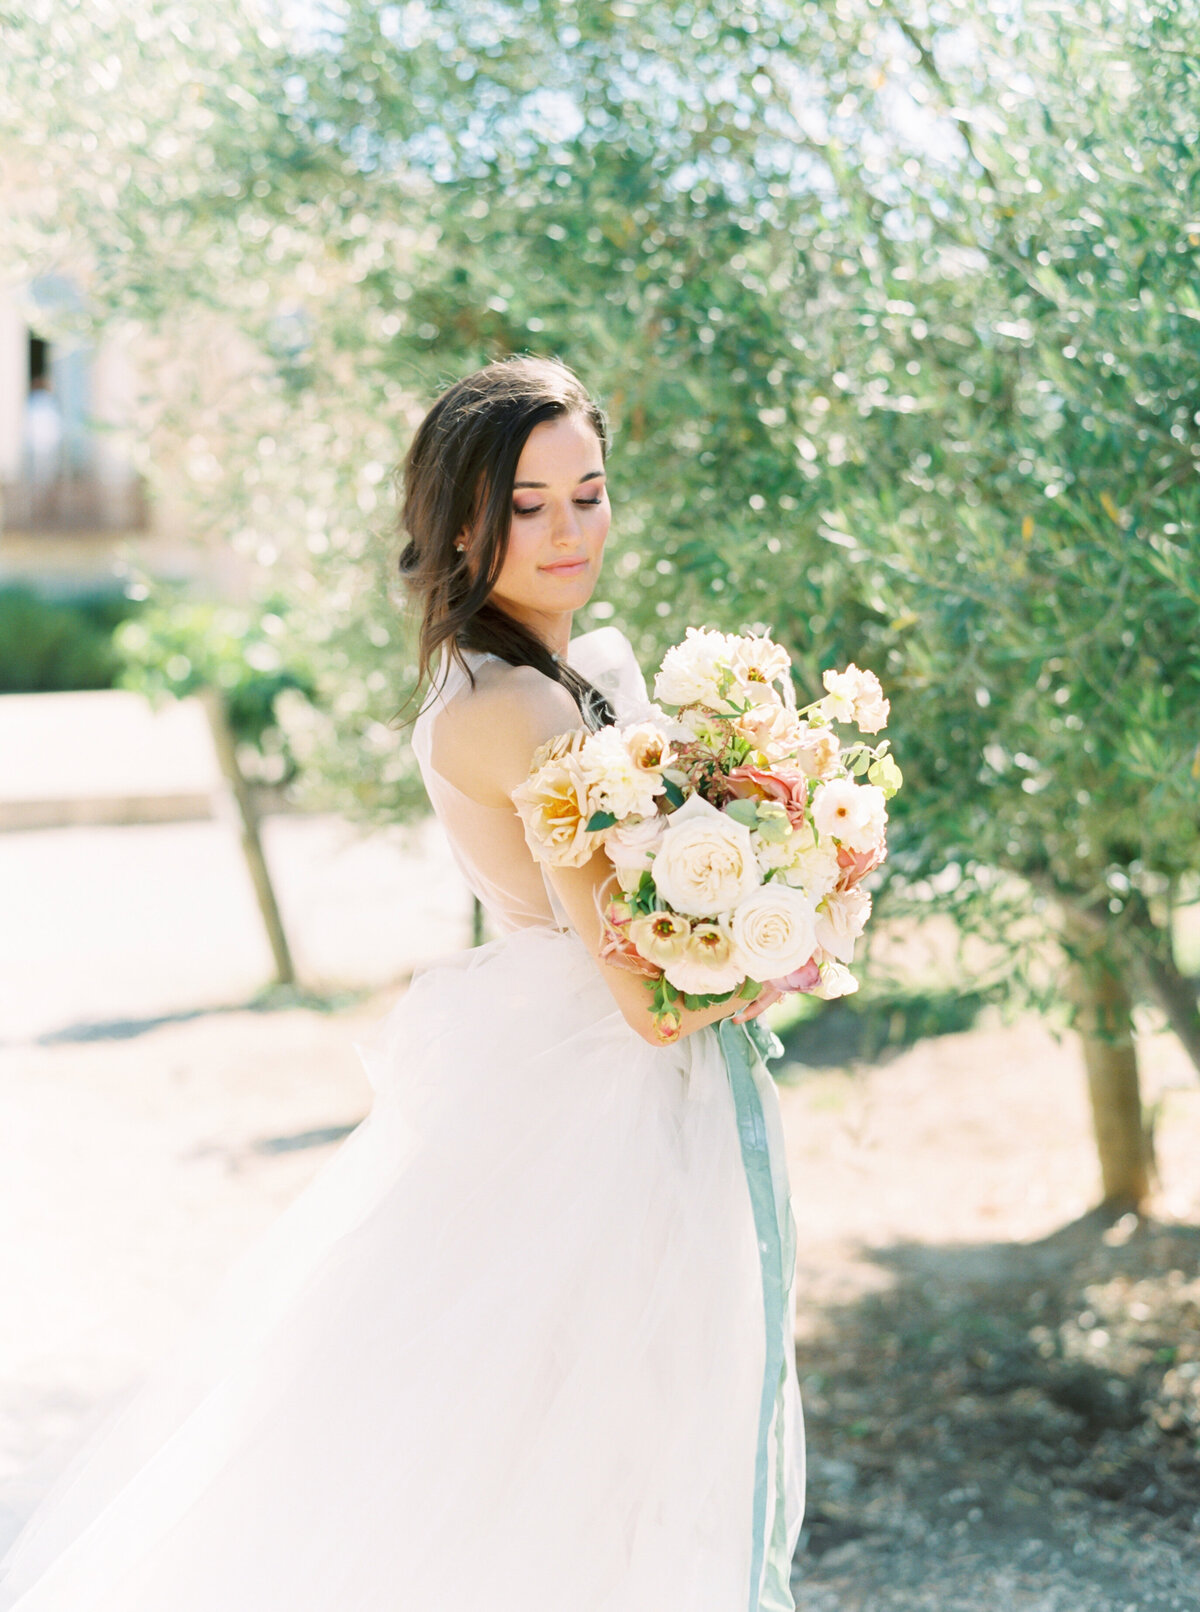 TiffaneyChildsPhotography-CaliforniaWeddingPhotographer-Clara+Alexandre-SunstoneVilla-250